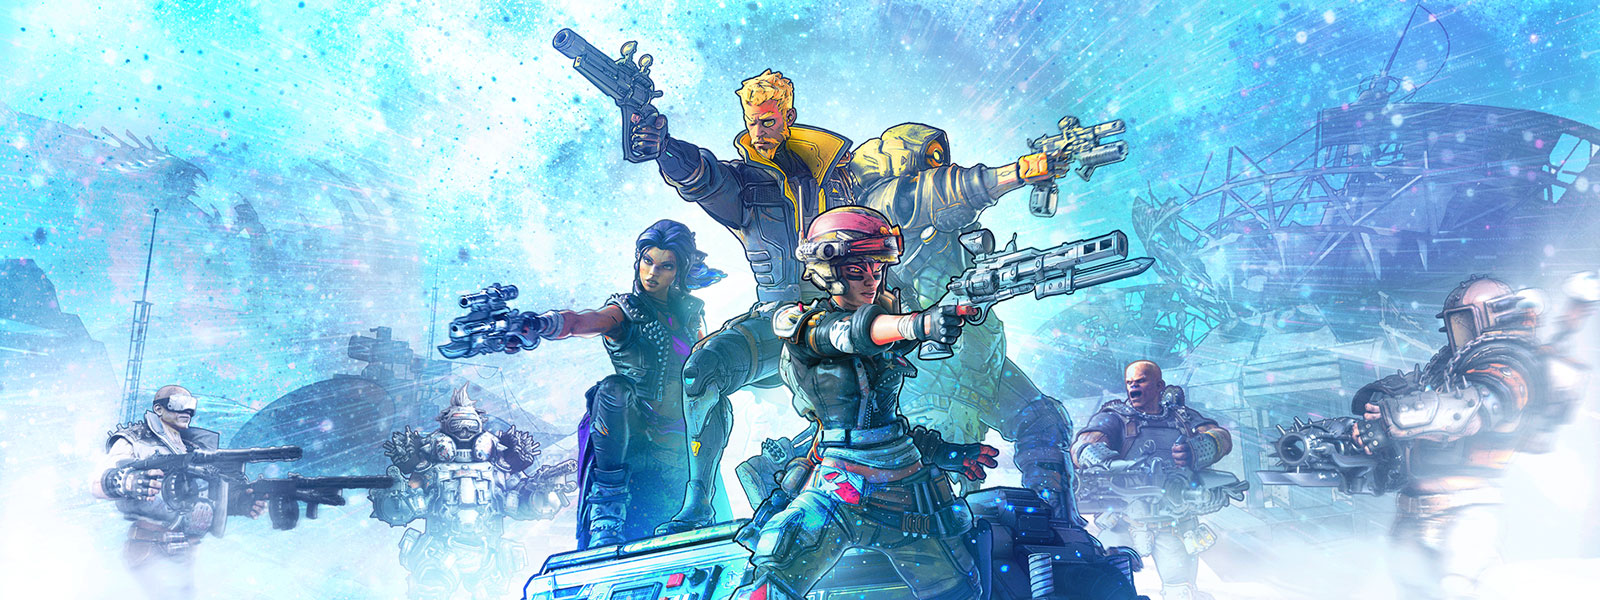 A group of characters point their guns ready for battle.